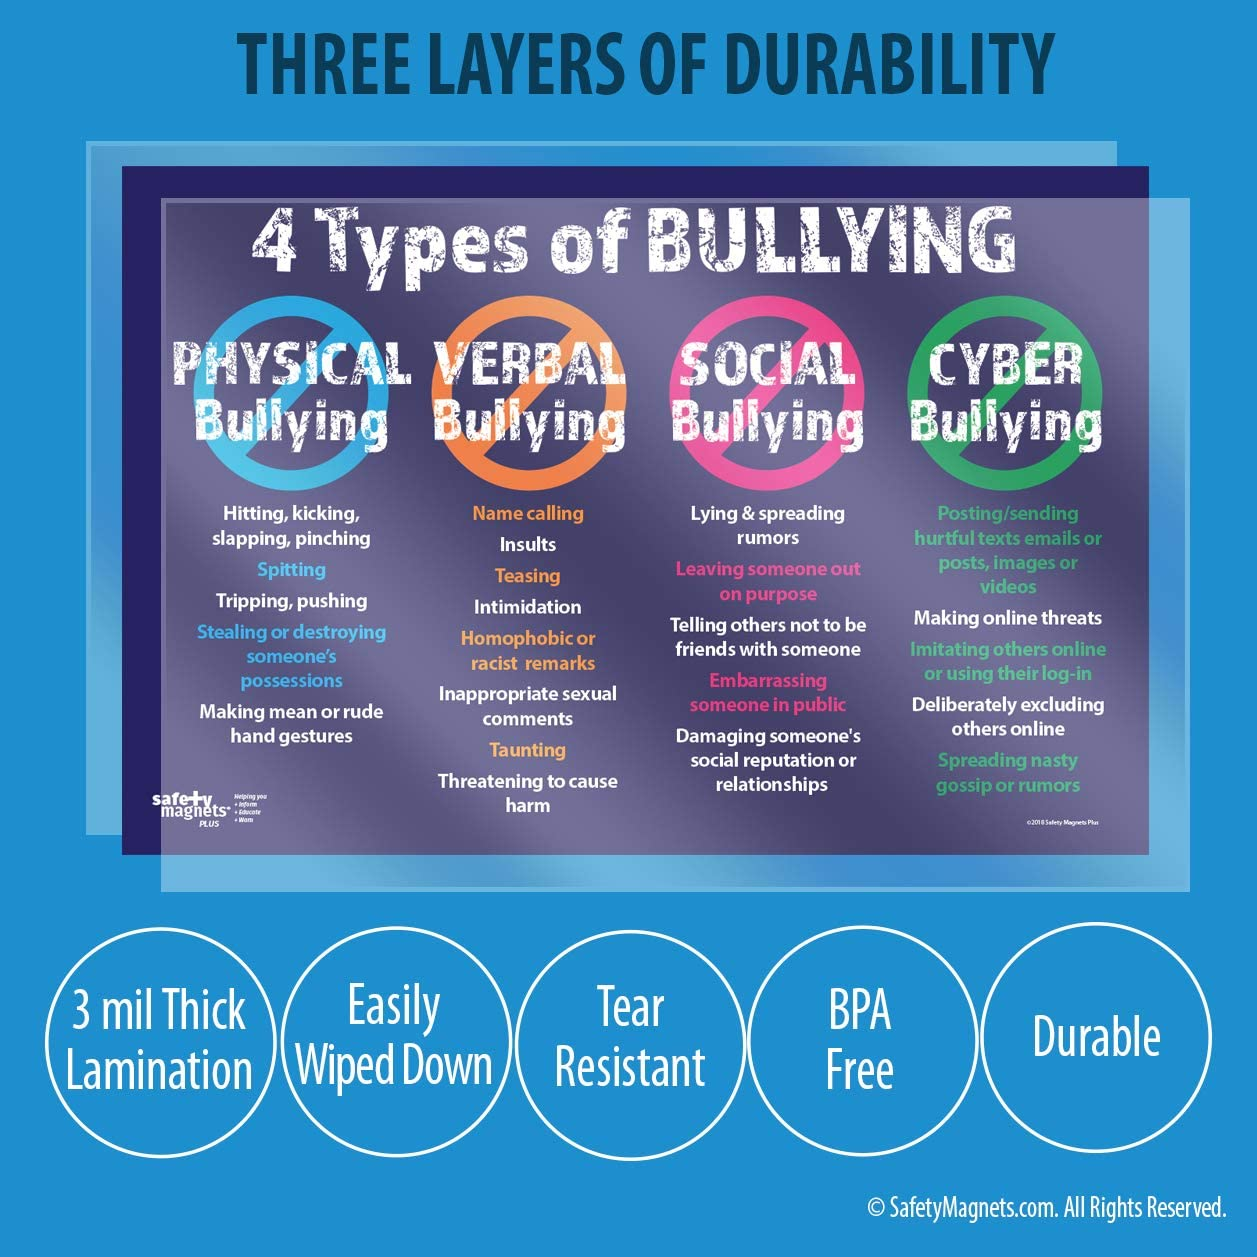 Anti Bullying Classroom Posters 2 Pack Workplace Bullying Educational Poster - No Bullying Posters for Schools 4 Types of Bullying Poster 17 inches x 22 inches